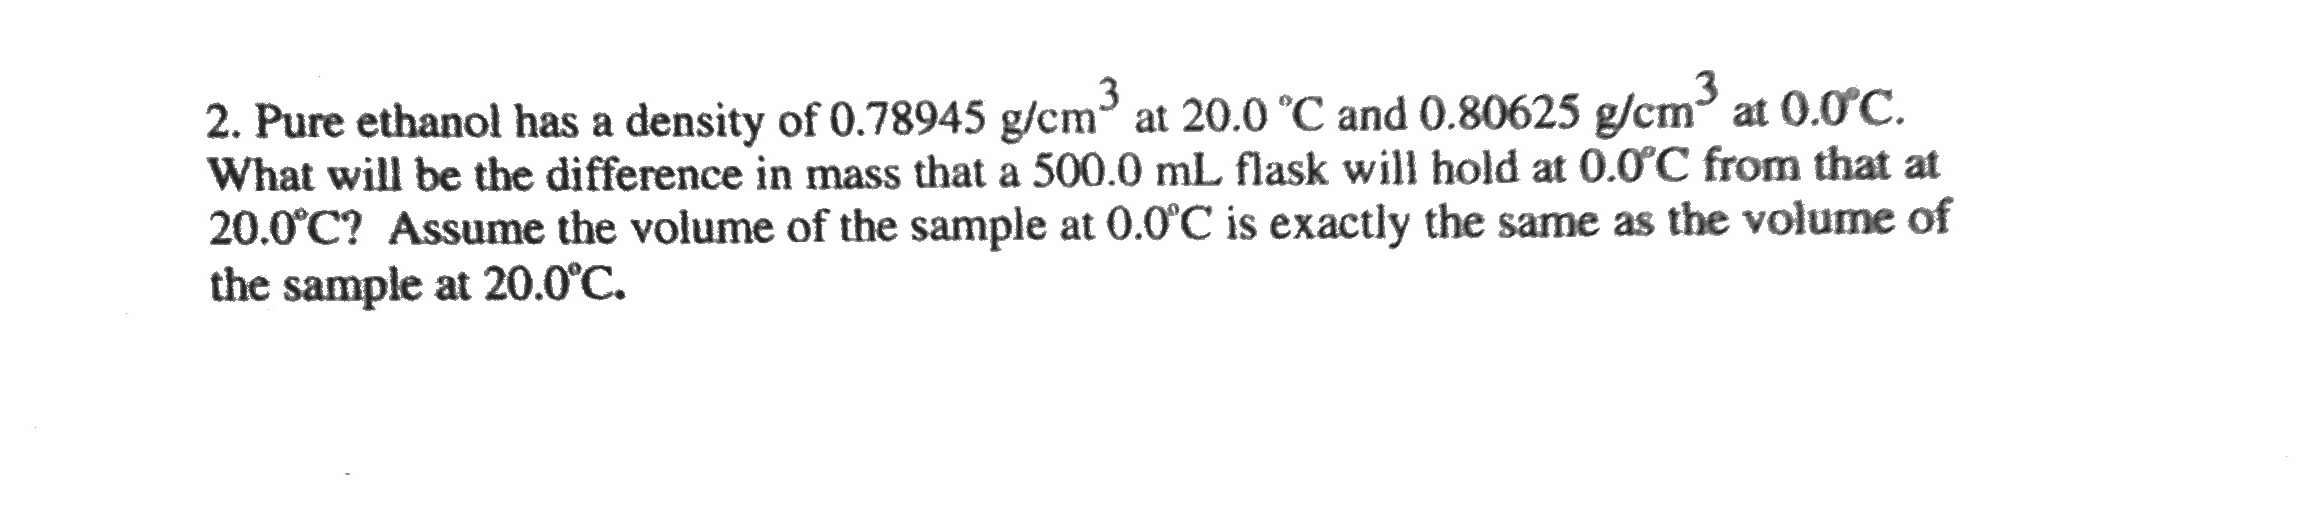 Pure ethanol has a density of 0.78945 g/cm3 at 20.